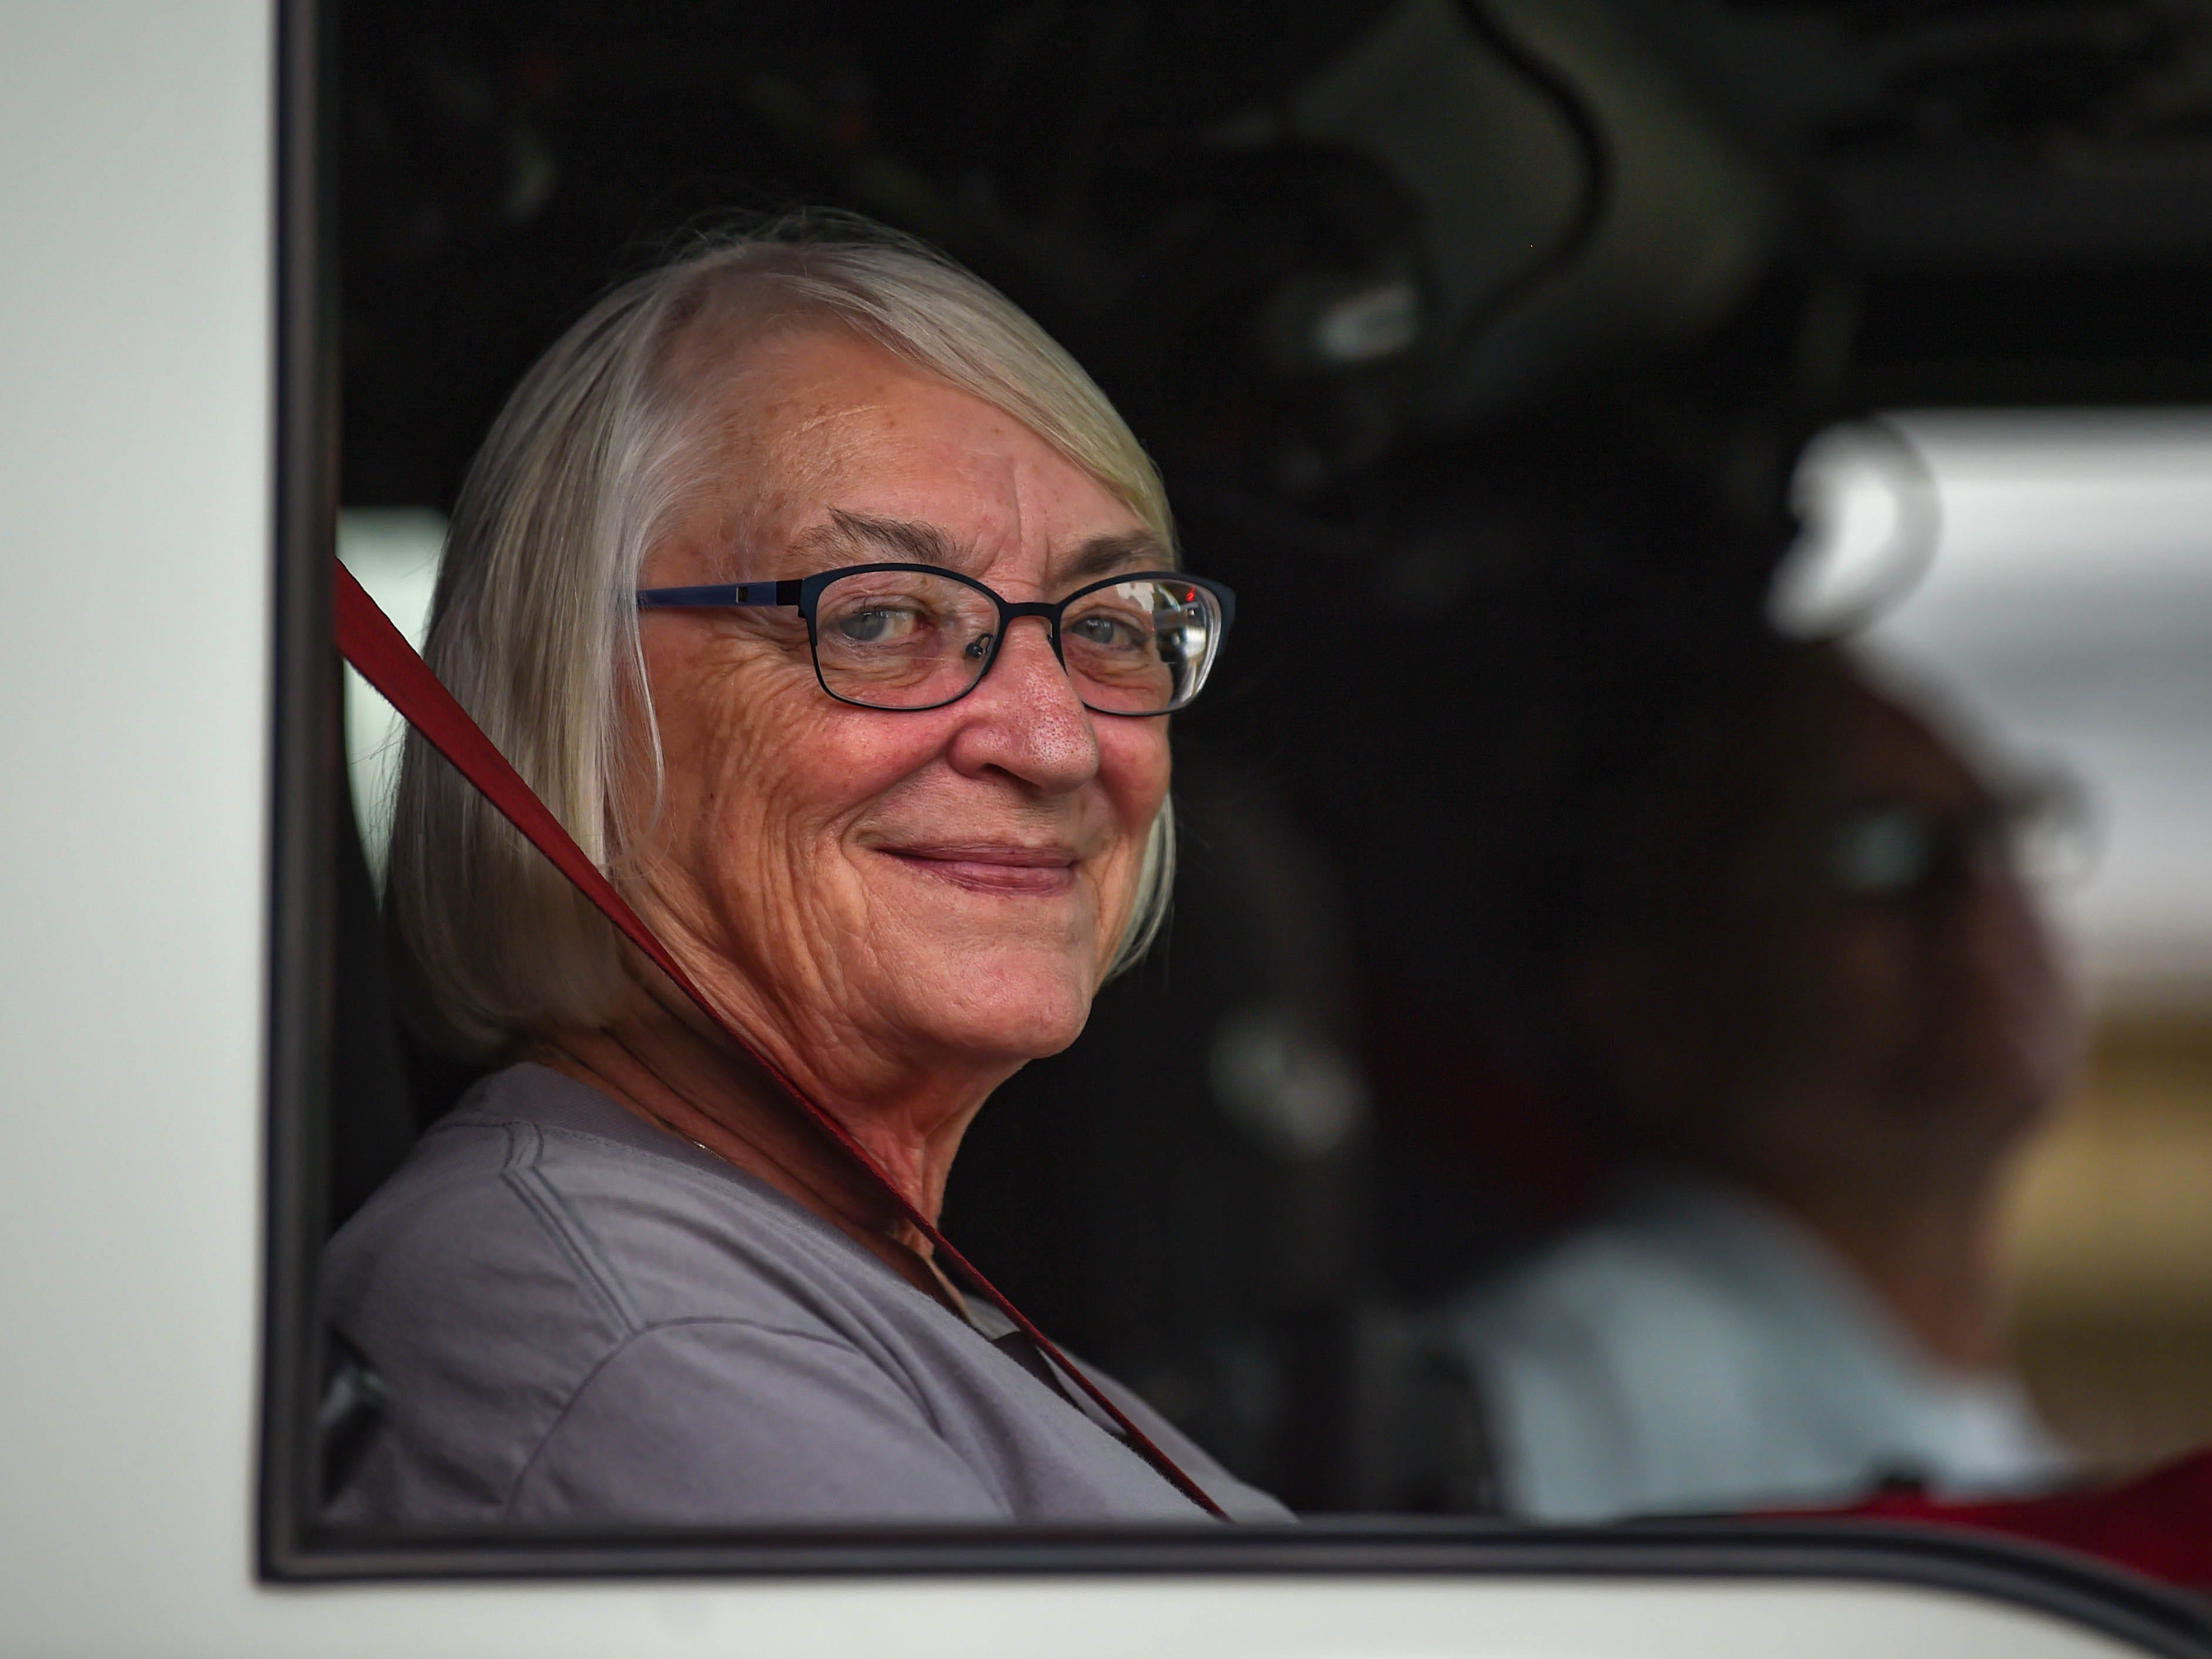 A Woman is all smiles during the York County Fireman's Parade, celebrating Alert Fire Company's 100th year, Saturday, August 18, 2018.